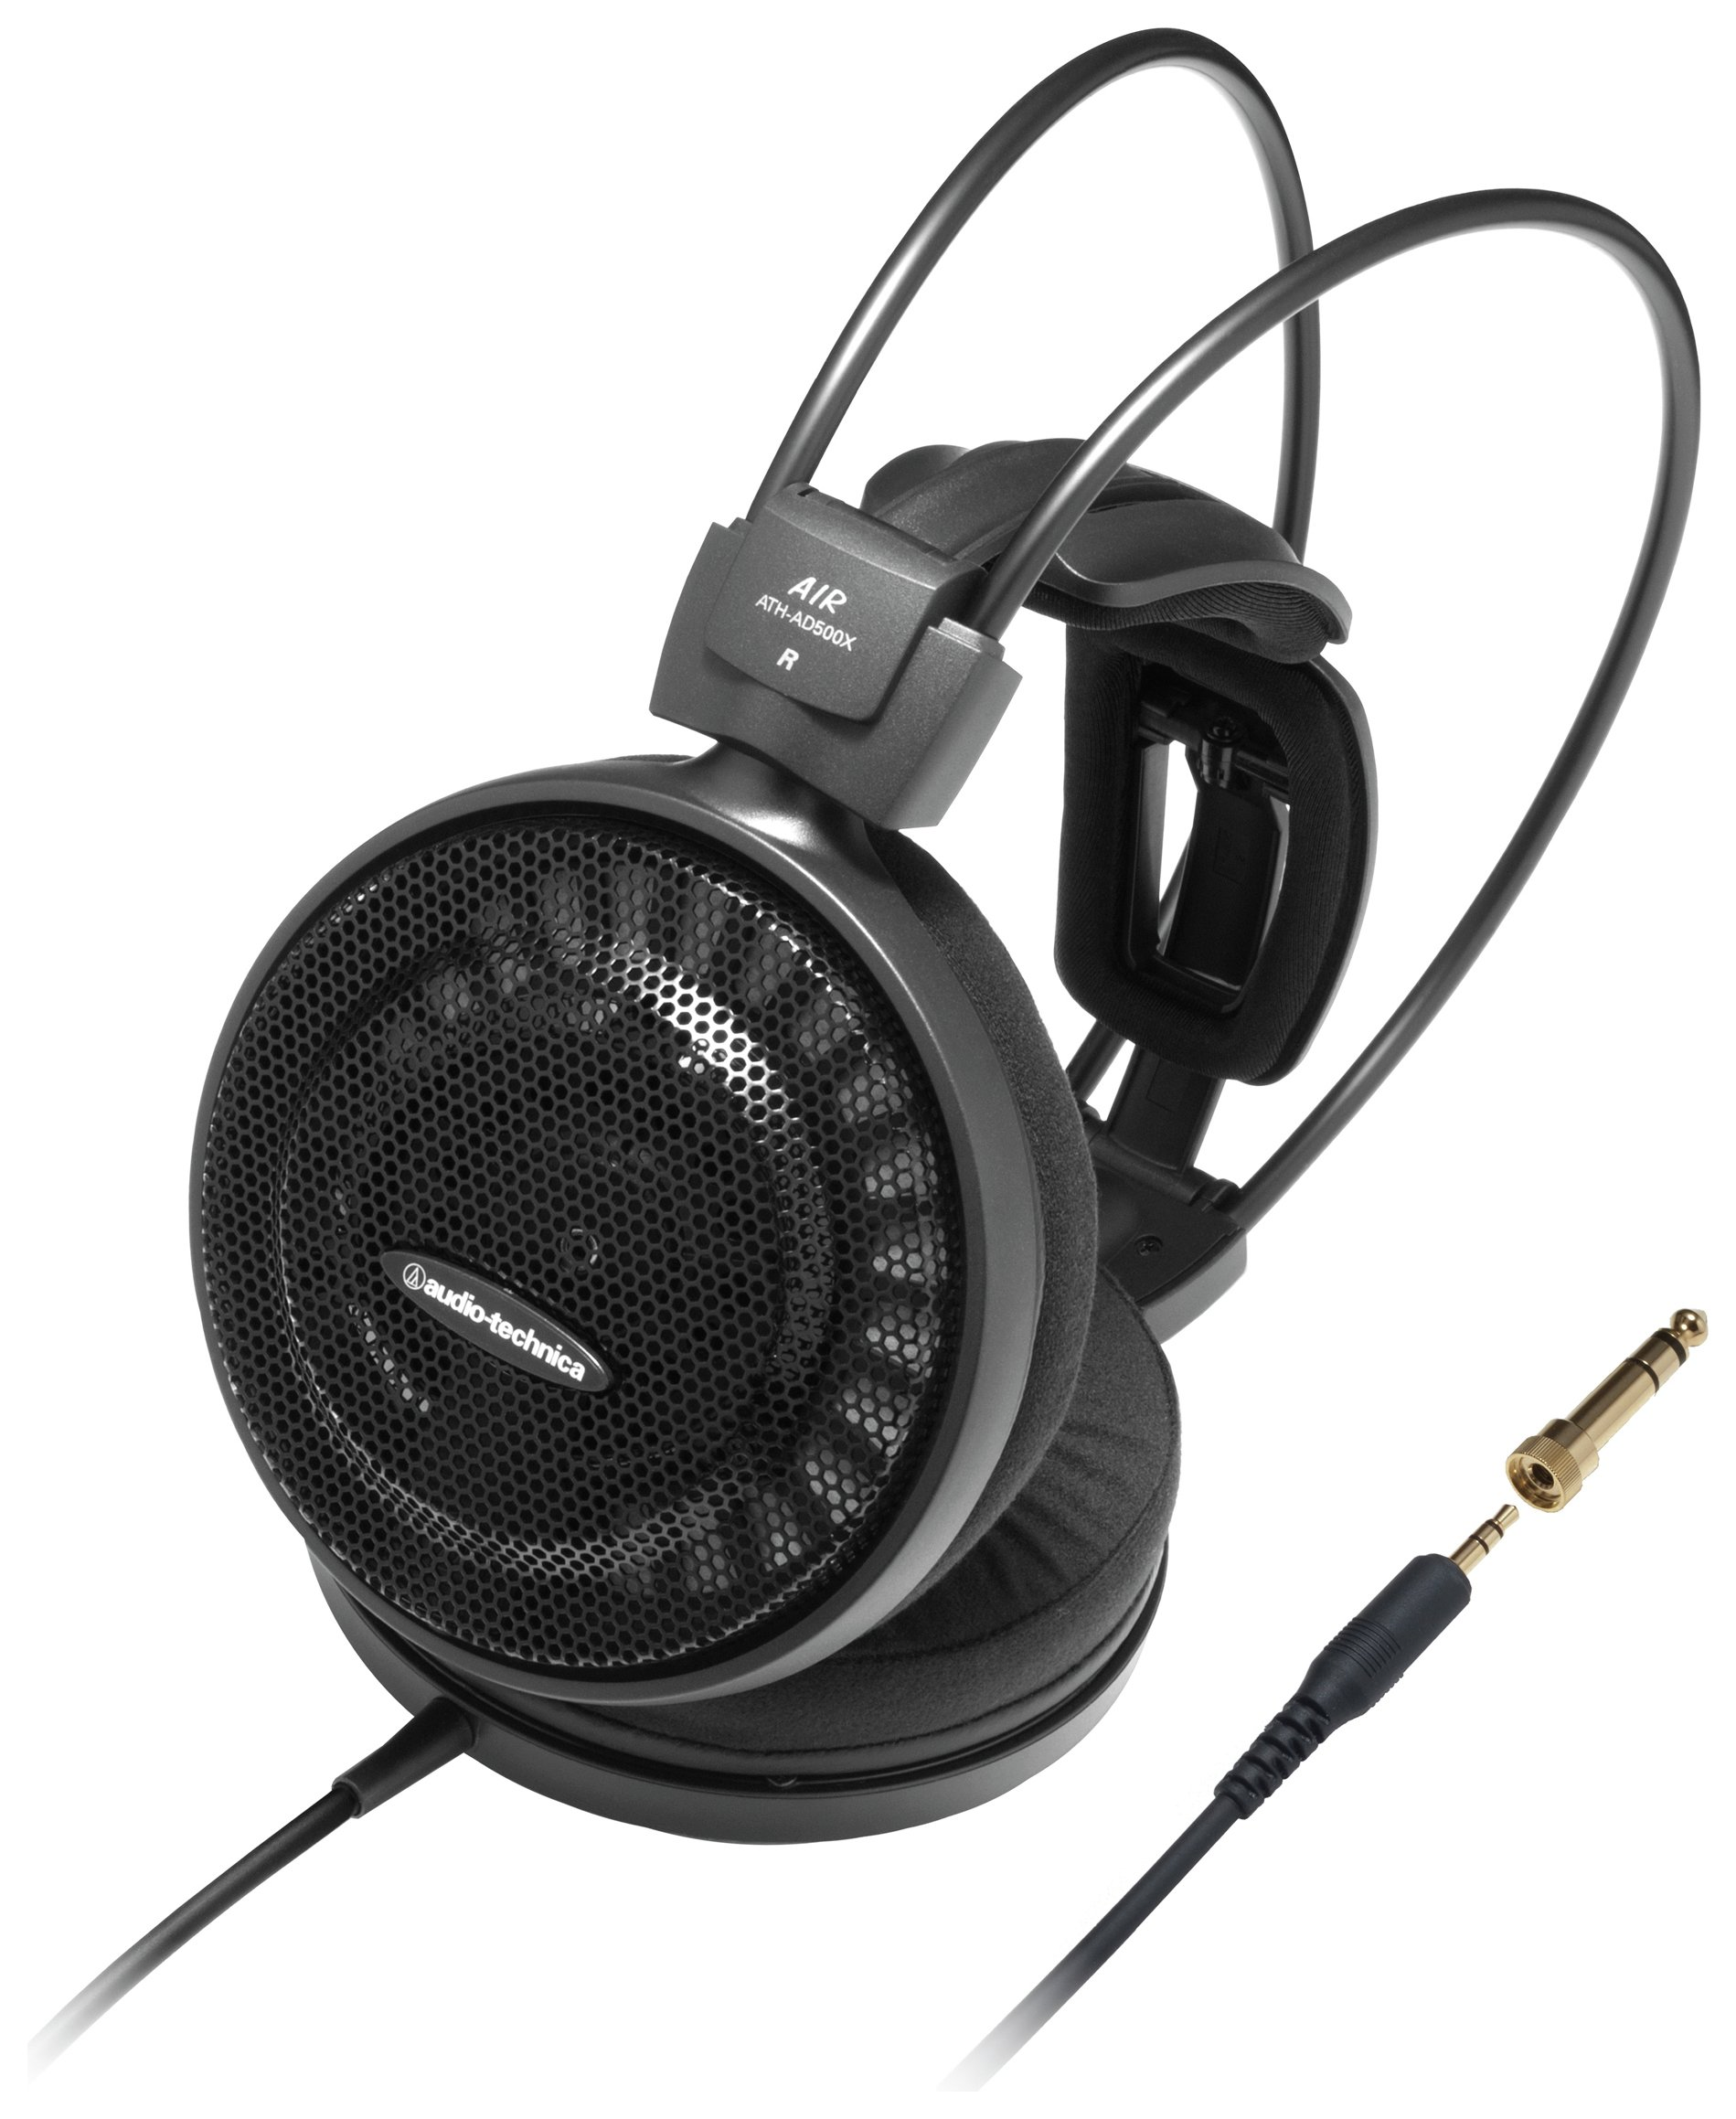 Image of Audio Technica ATH-AD500X On-Ear Headphones - Black.